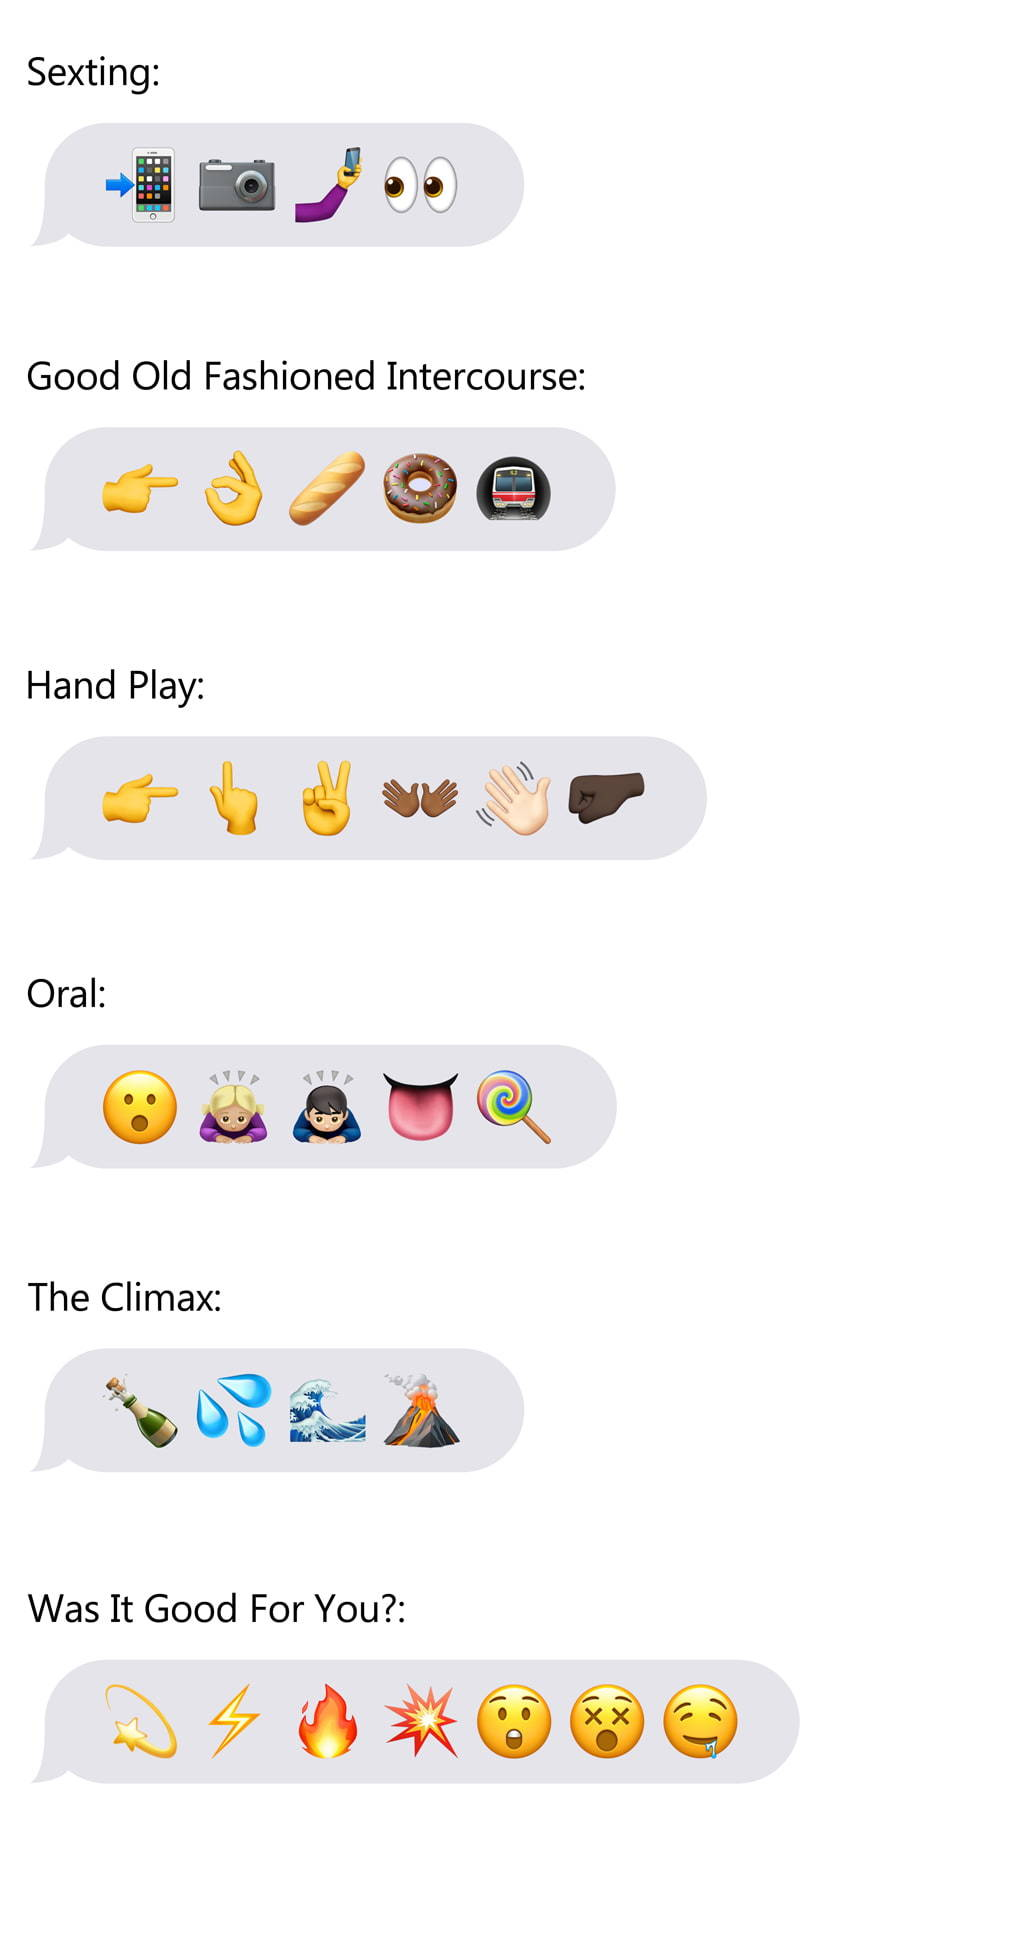 Examples Of Emojis To Describe Sex